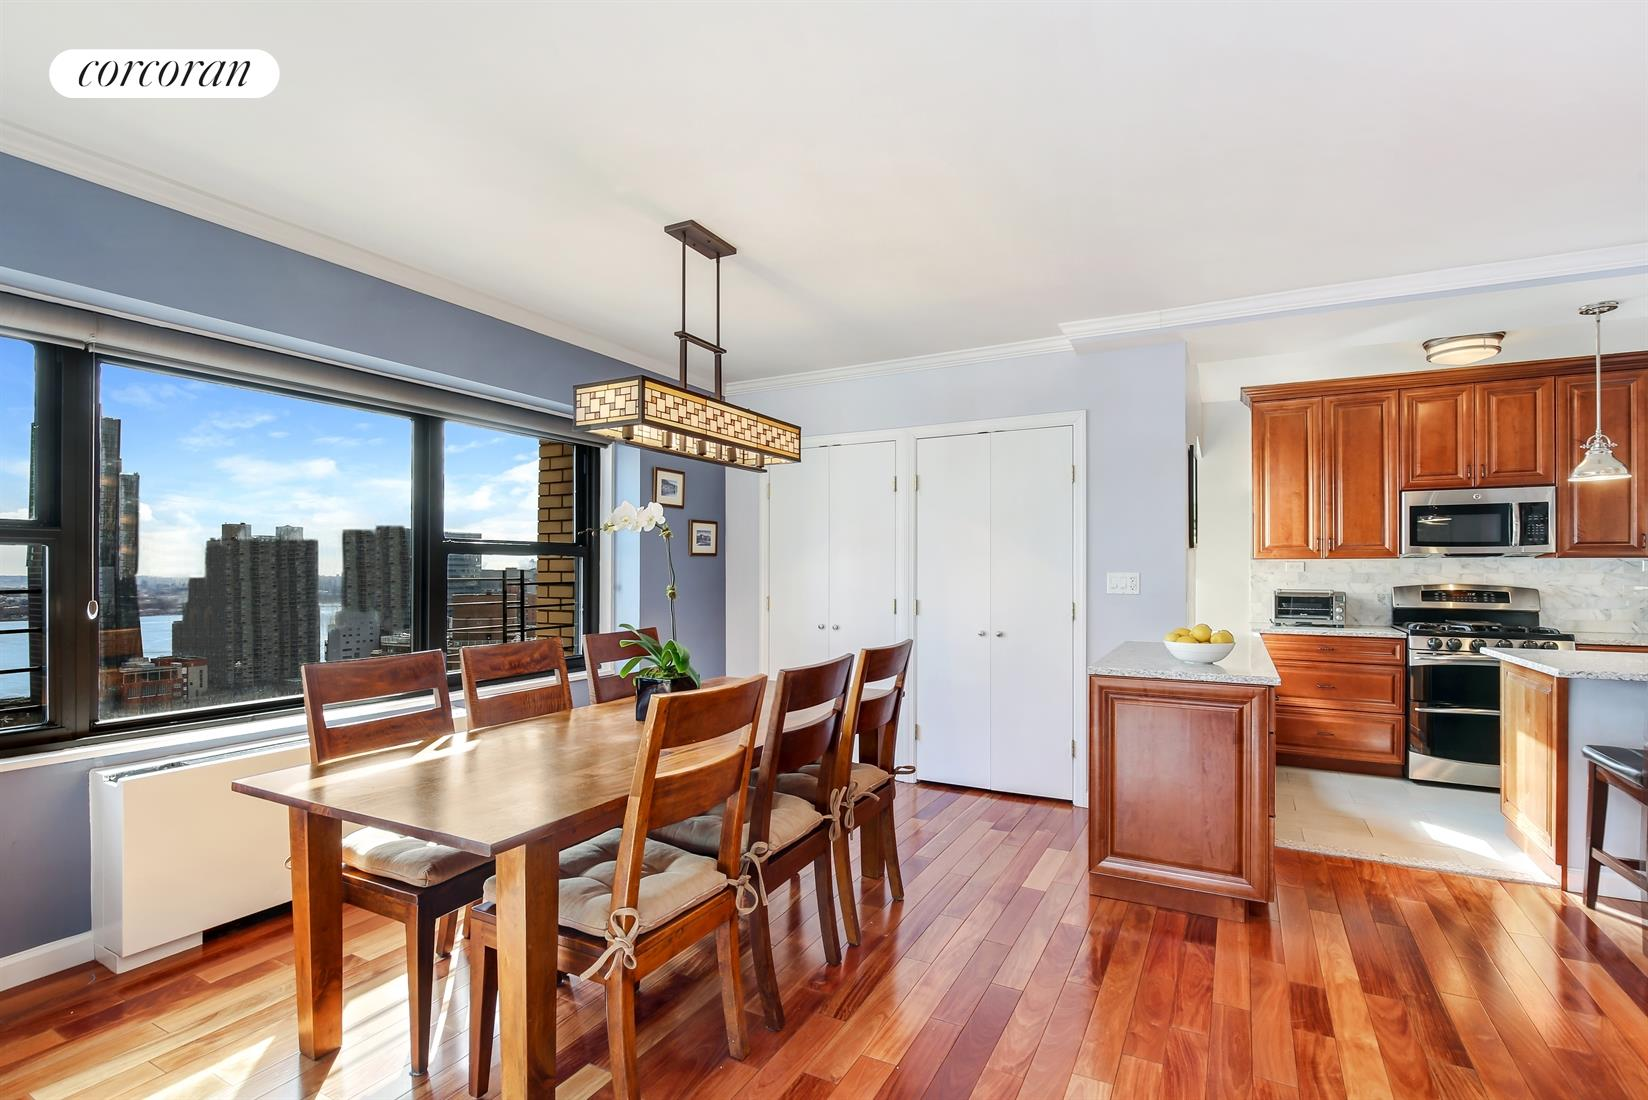 Corcoran, 160 East 38th Street, Apt  24E, Murray Hill Real